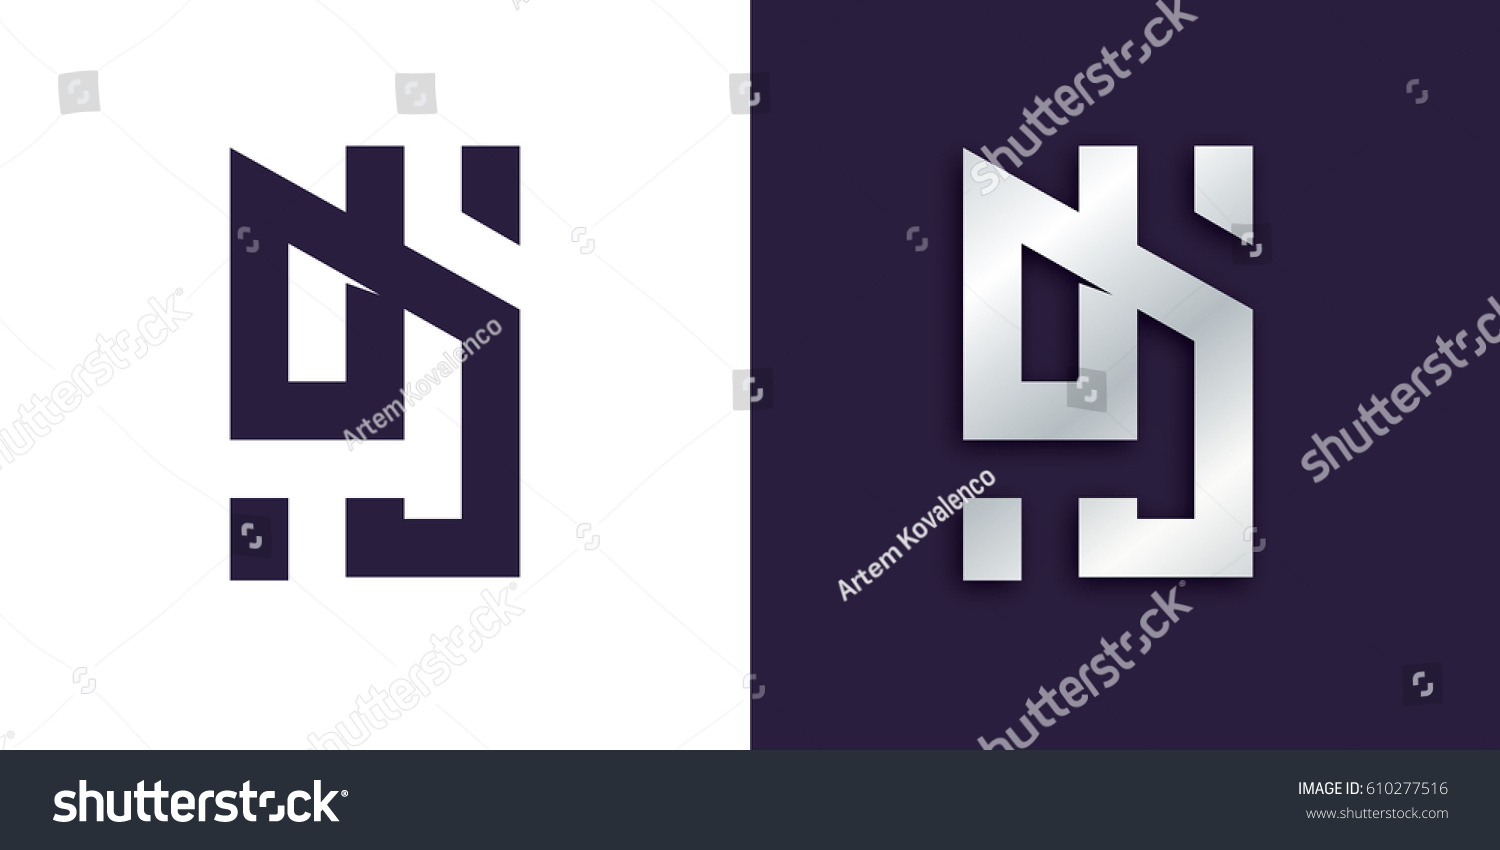 Vector logo illustration dj abstract letters stock vector dj abstract letters cool logo for the dj party biocorpaavc Images